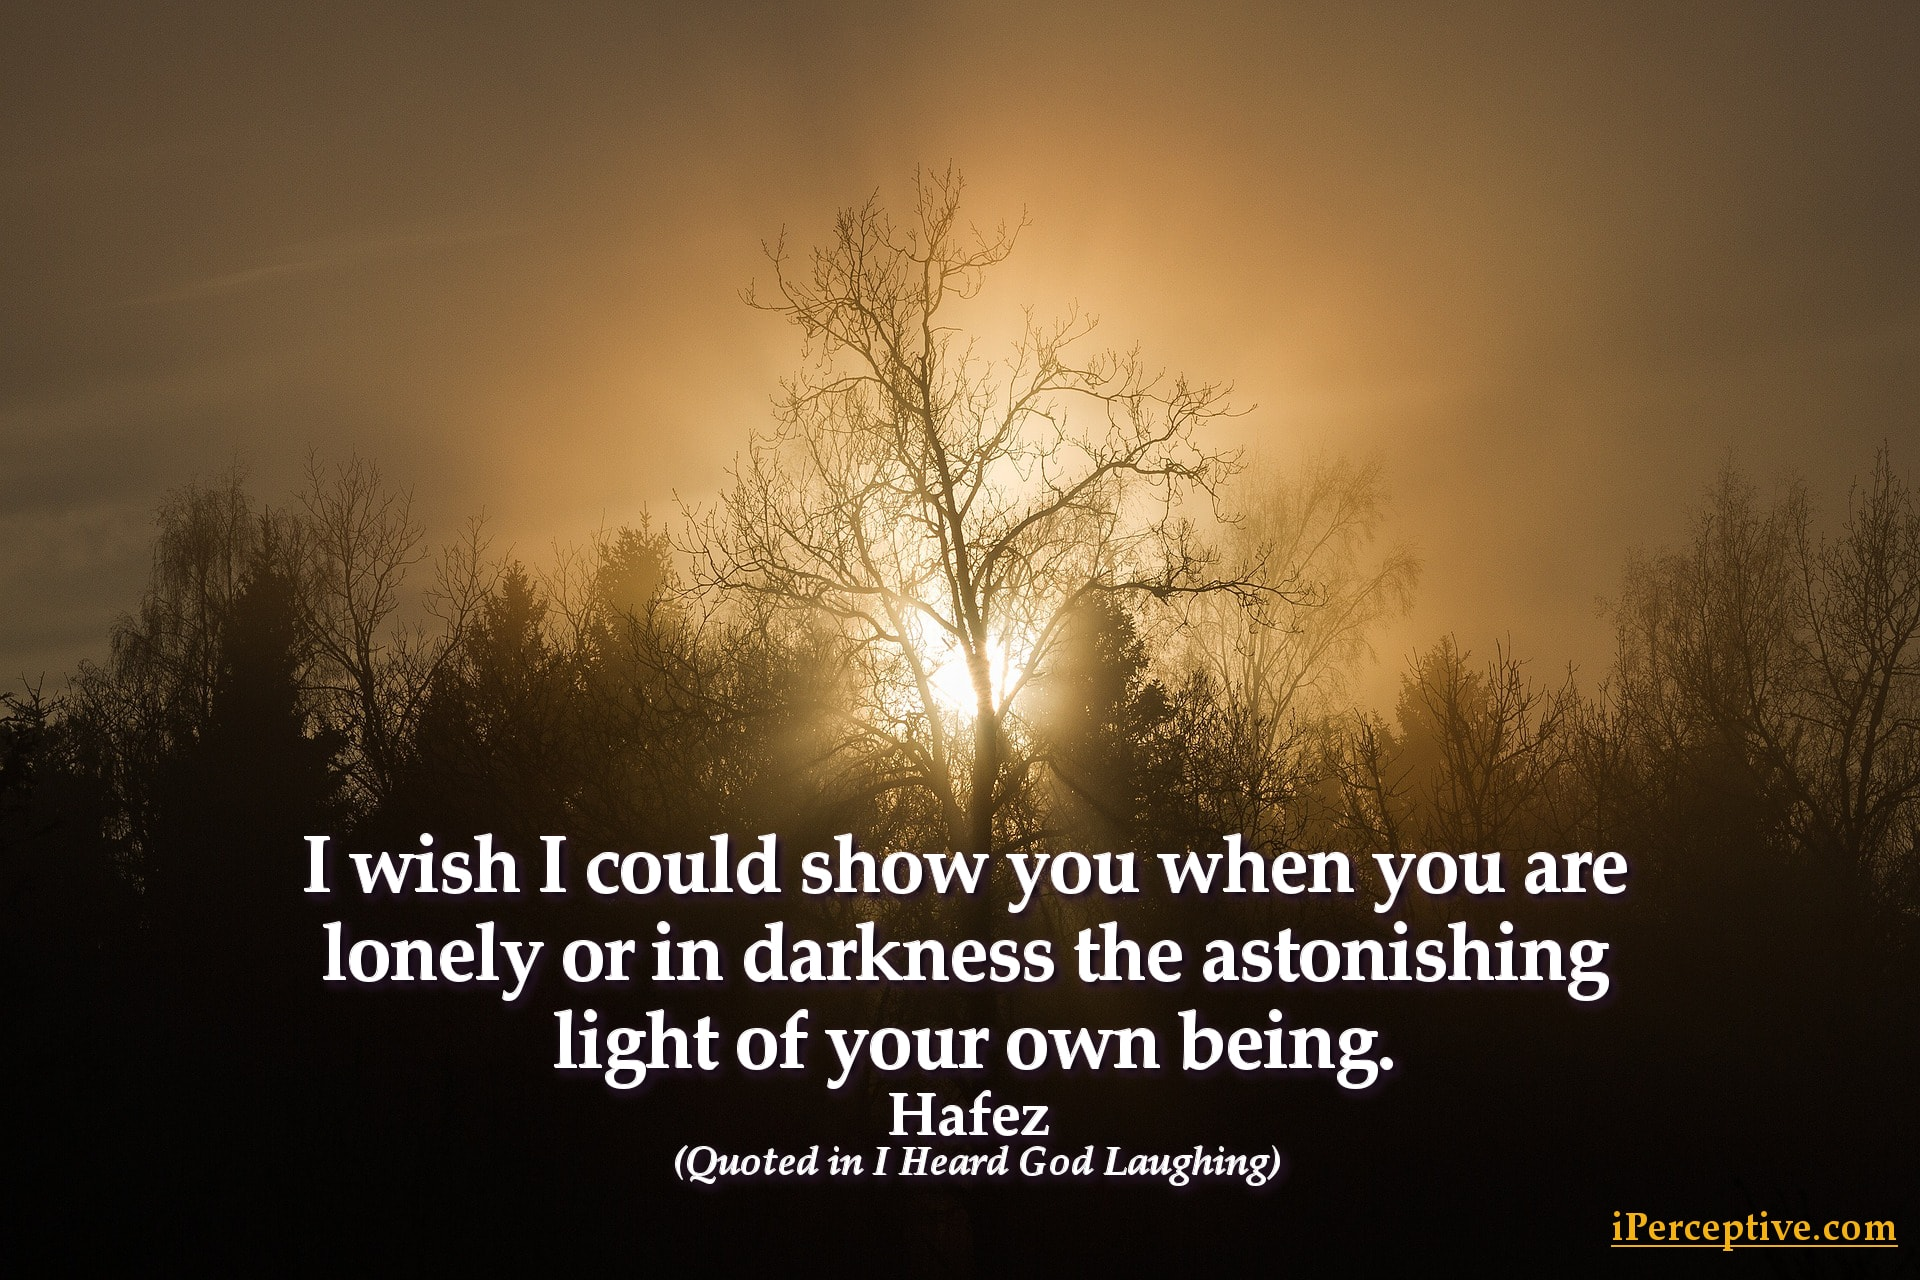 Hafez Quote: I wish I could show you when you are lonely or in darkness the astonishing light ...